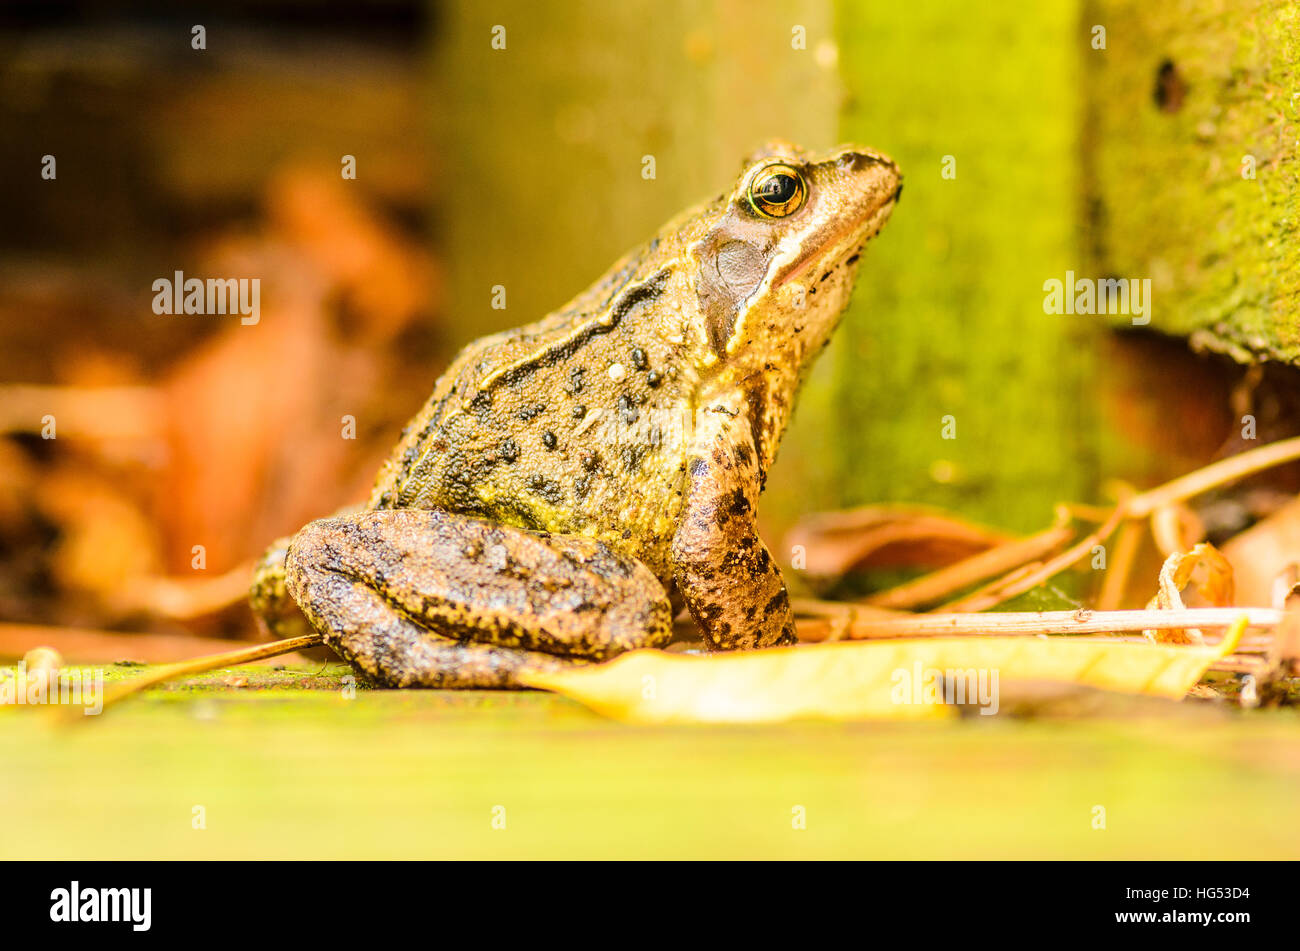 Common frog (Rana temporaria) in a Lancashire garden - Stock Image